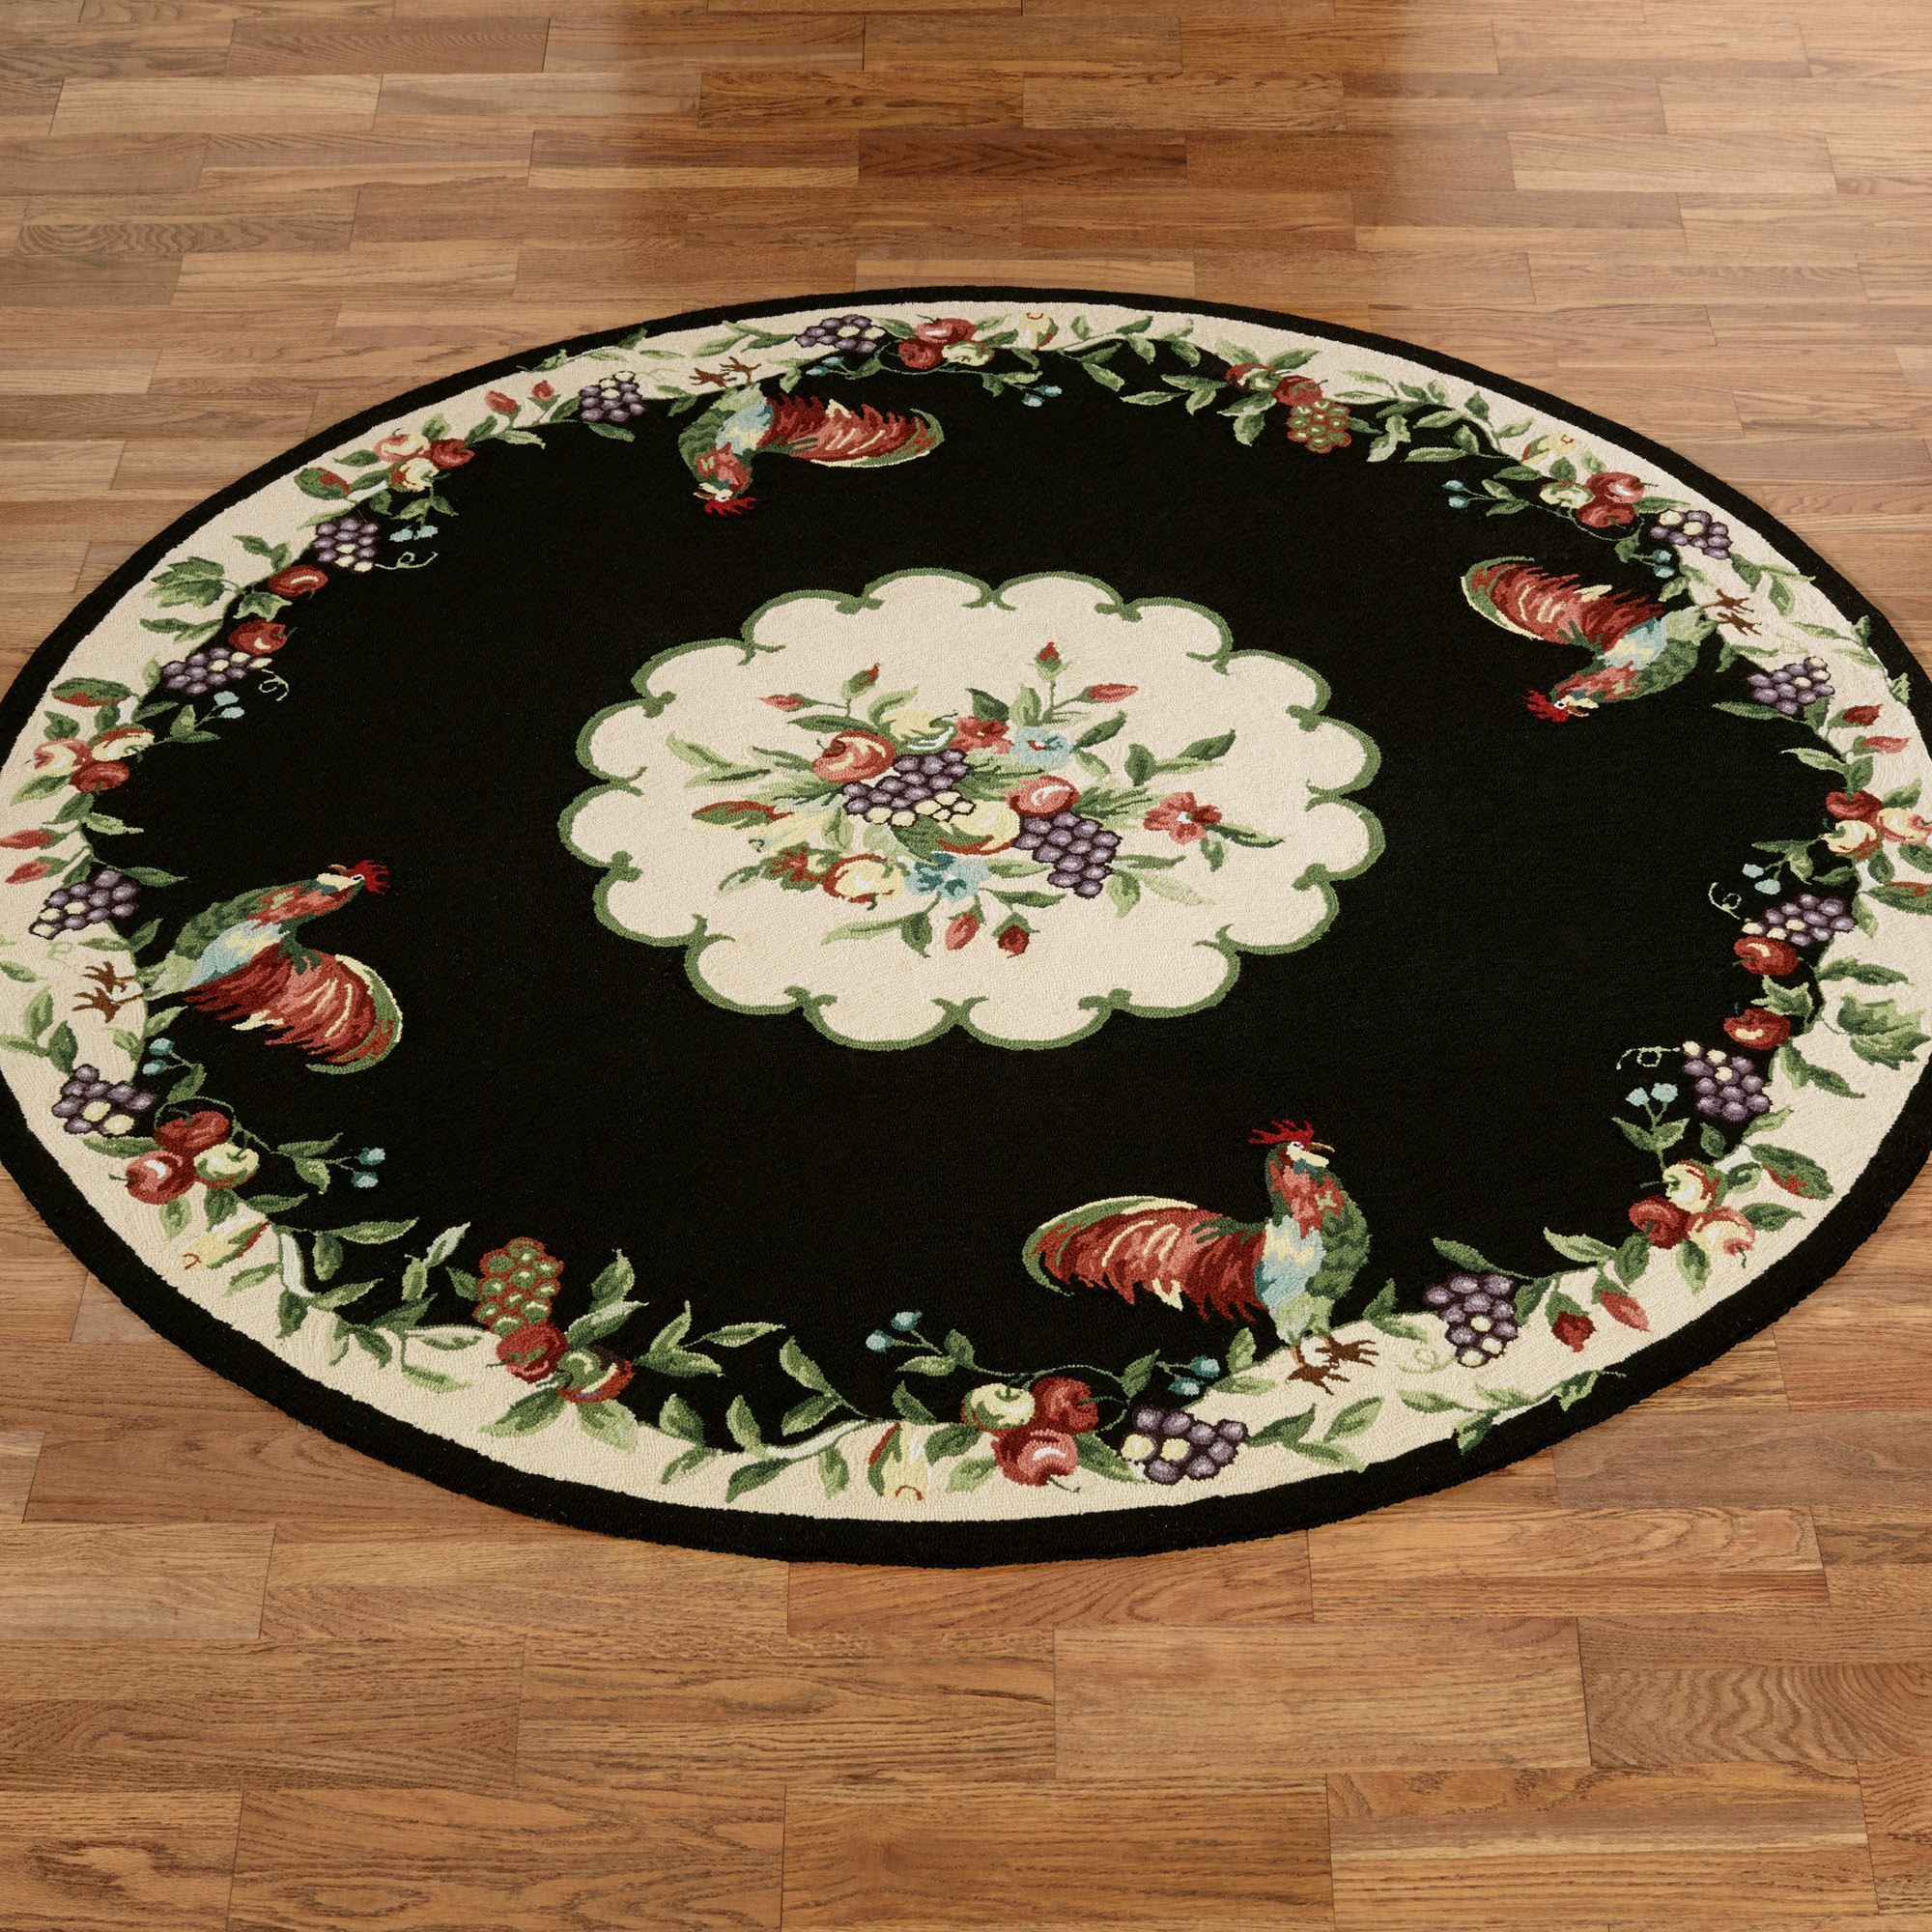 Fabulous Sonoma Hand Hooked Rooster Round Rugs Best Image Libraries Thycampuscom